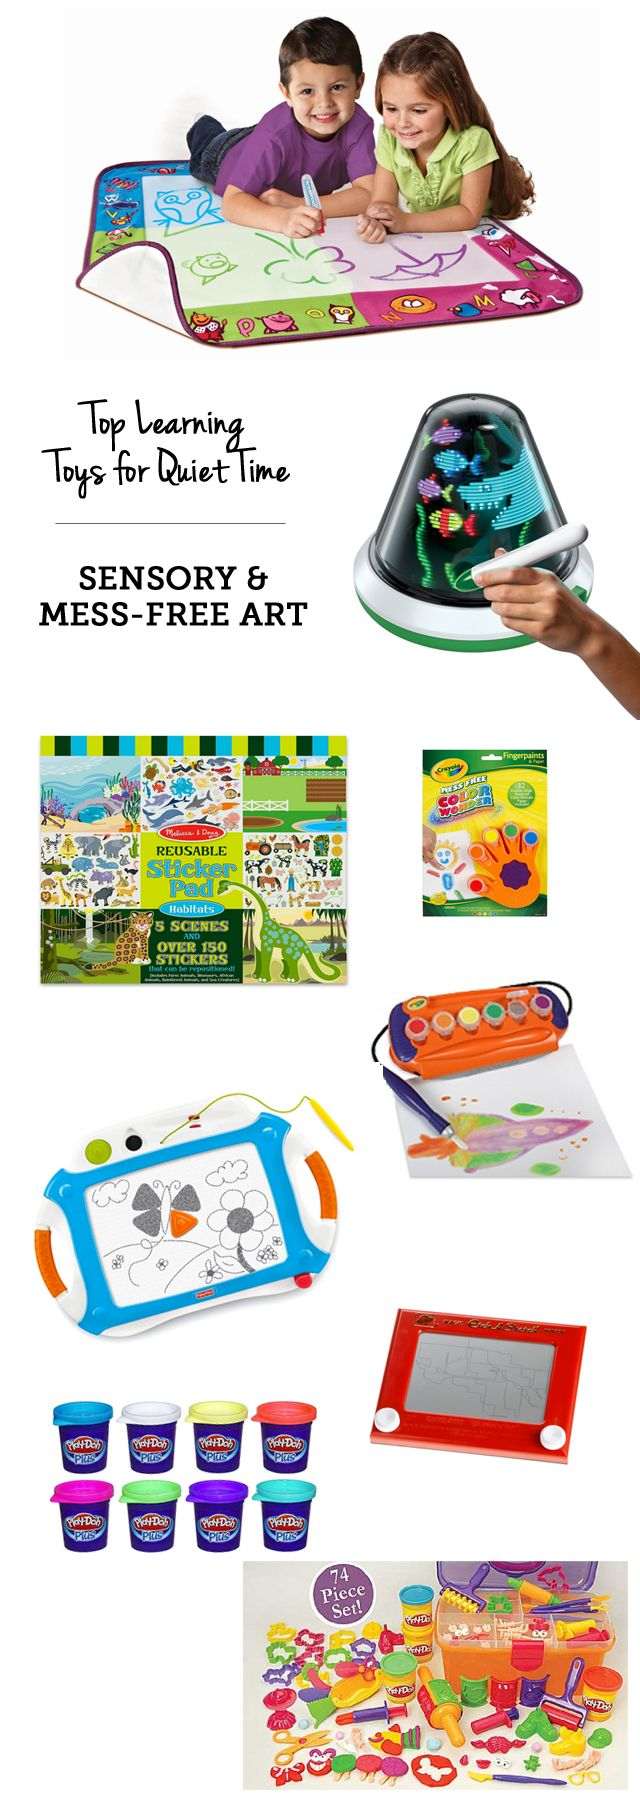 Keep kiddos busy with these educational toys- Top learning toys for quiet time: mess-free art supplies via MPMK